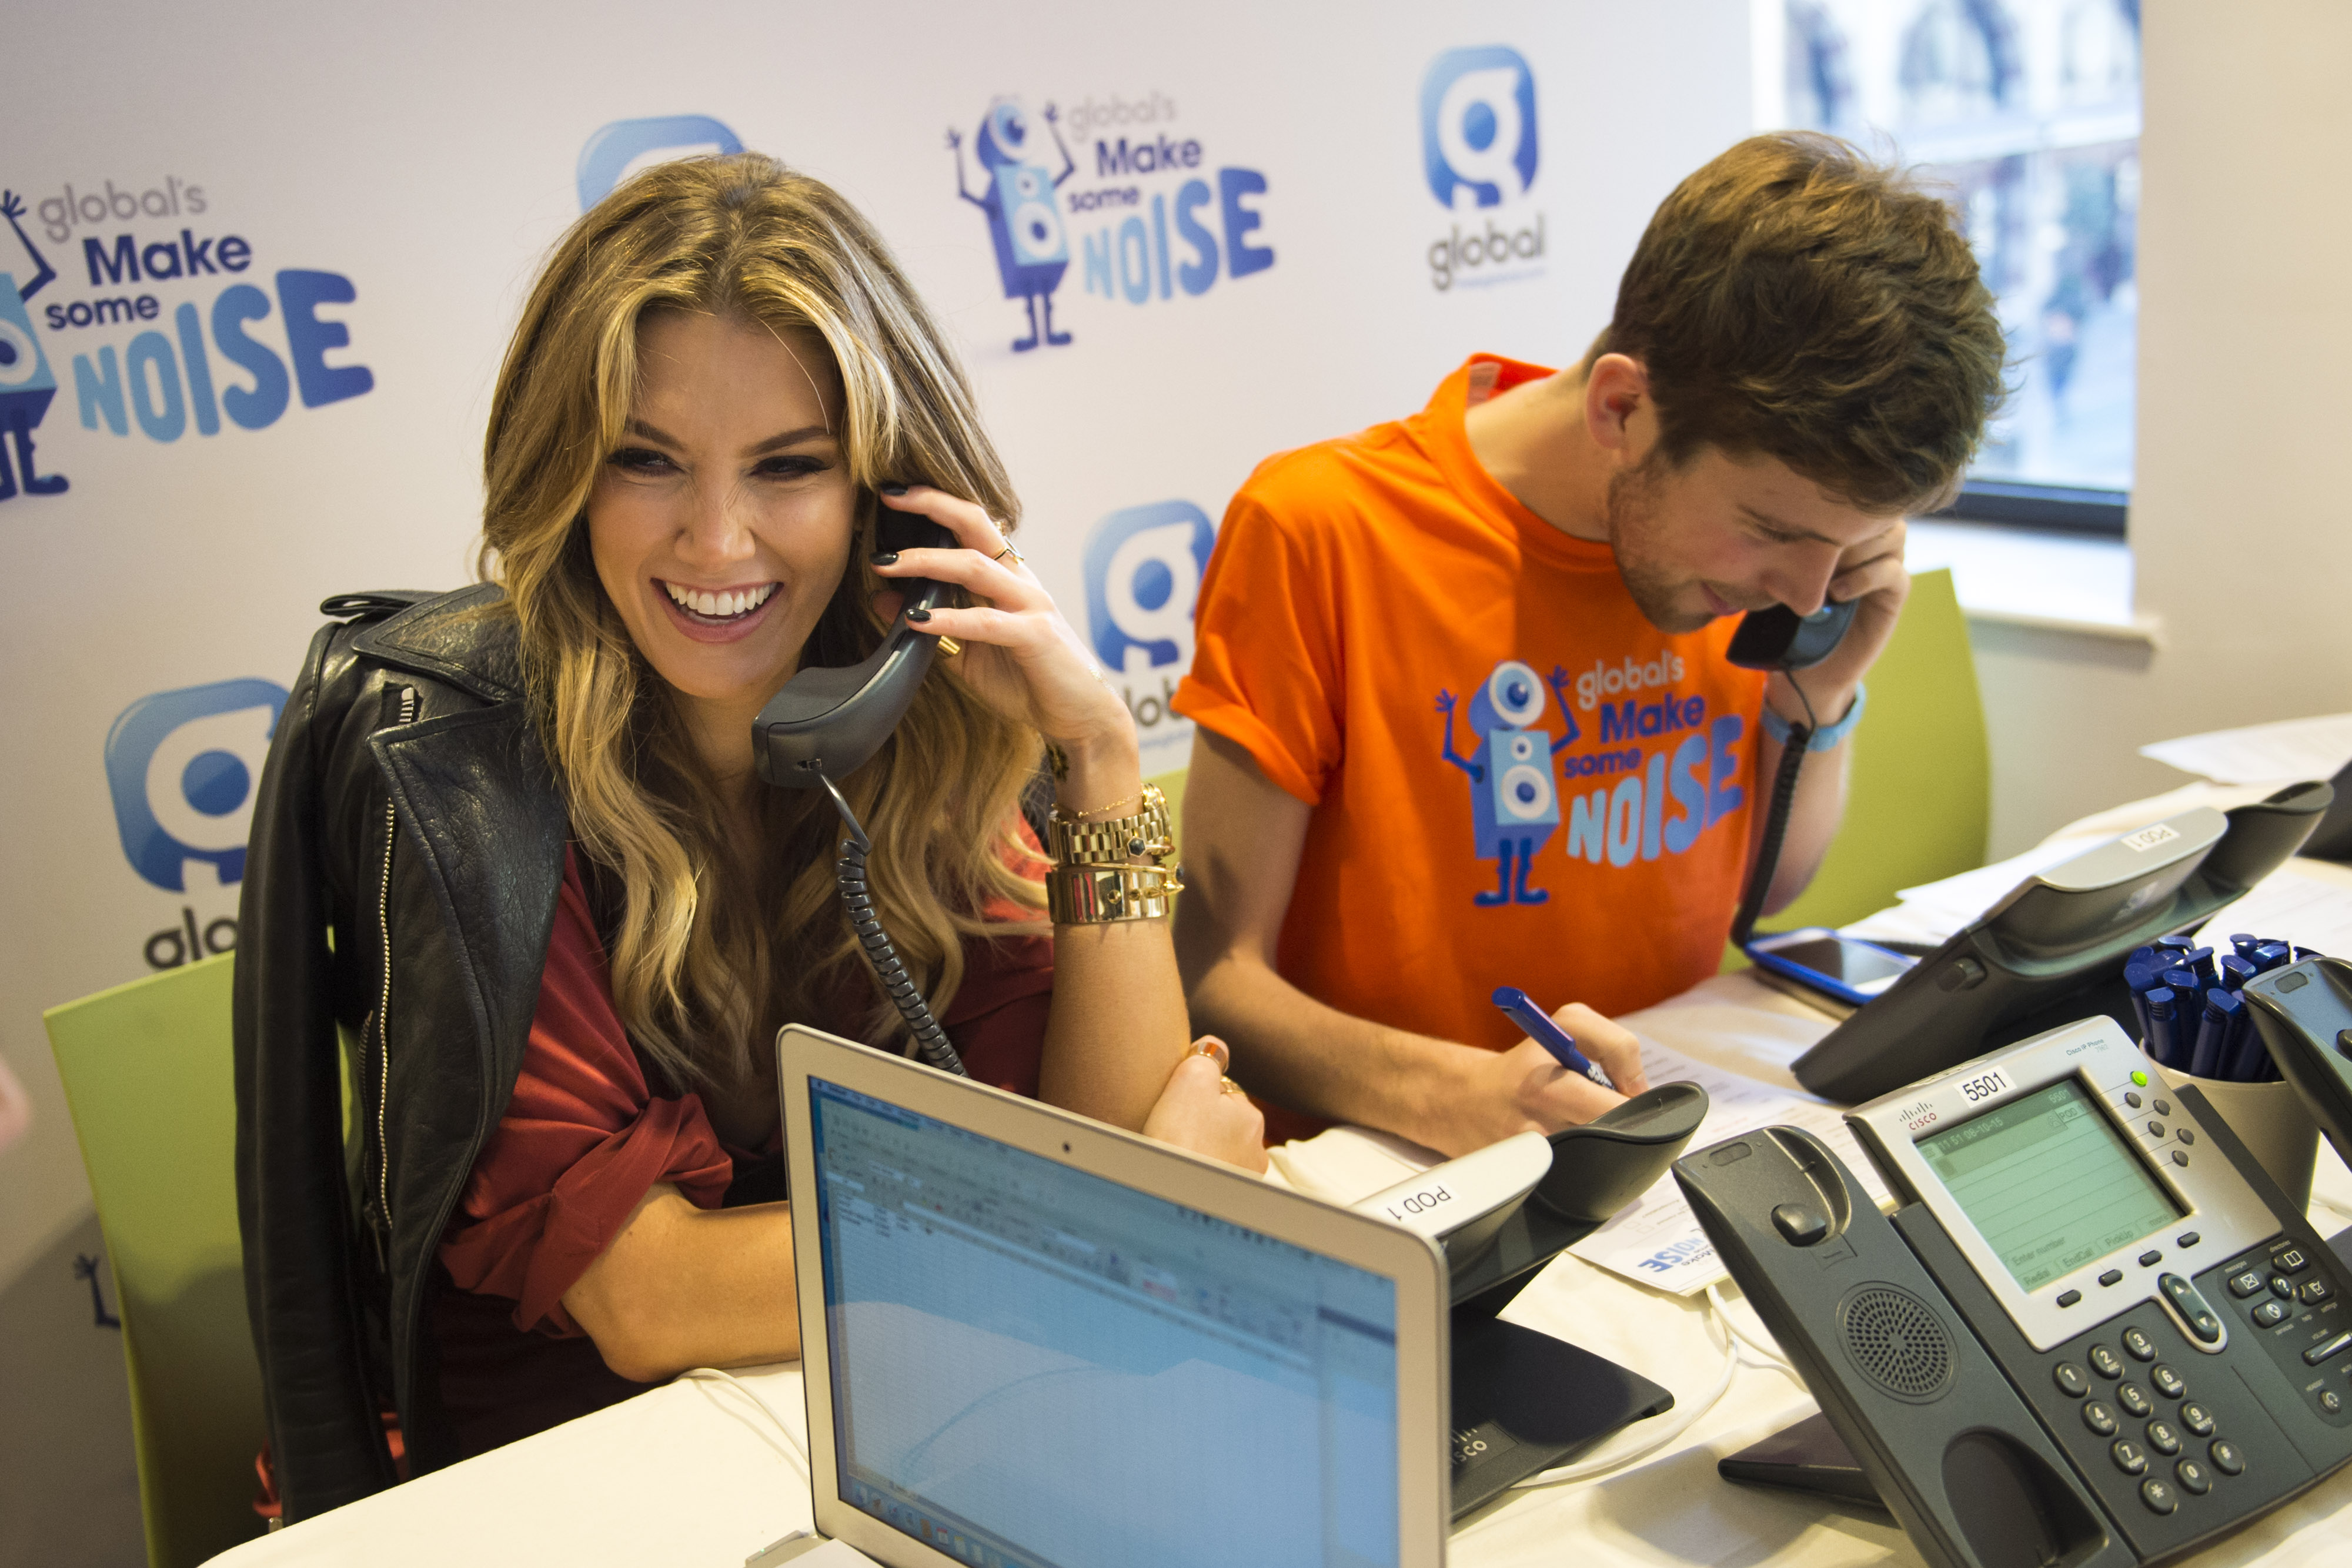 delta-goodrem-globals-make-some-noise-2015-1-1444309222